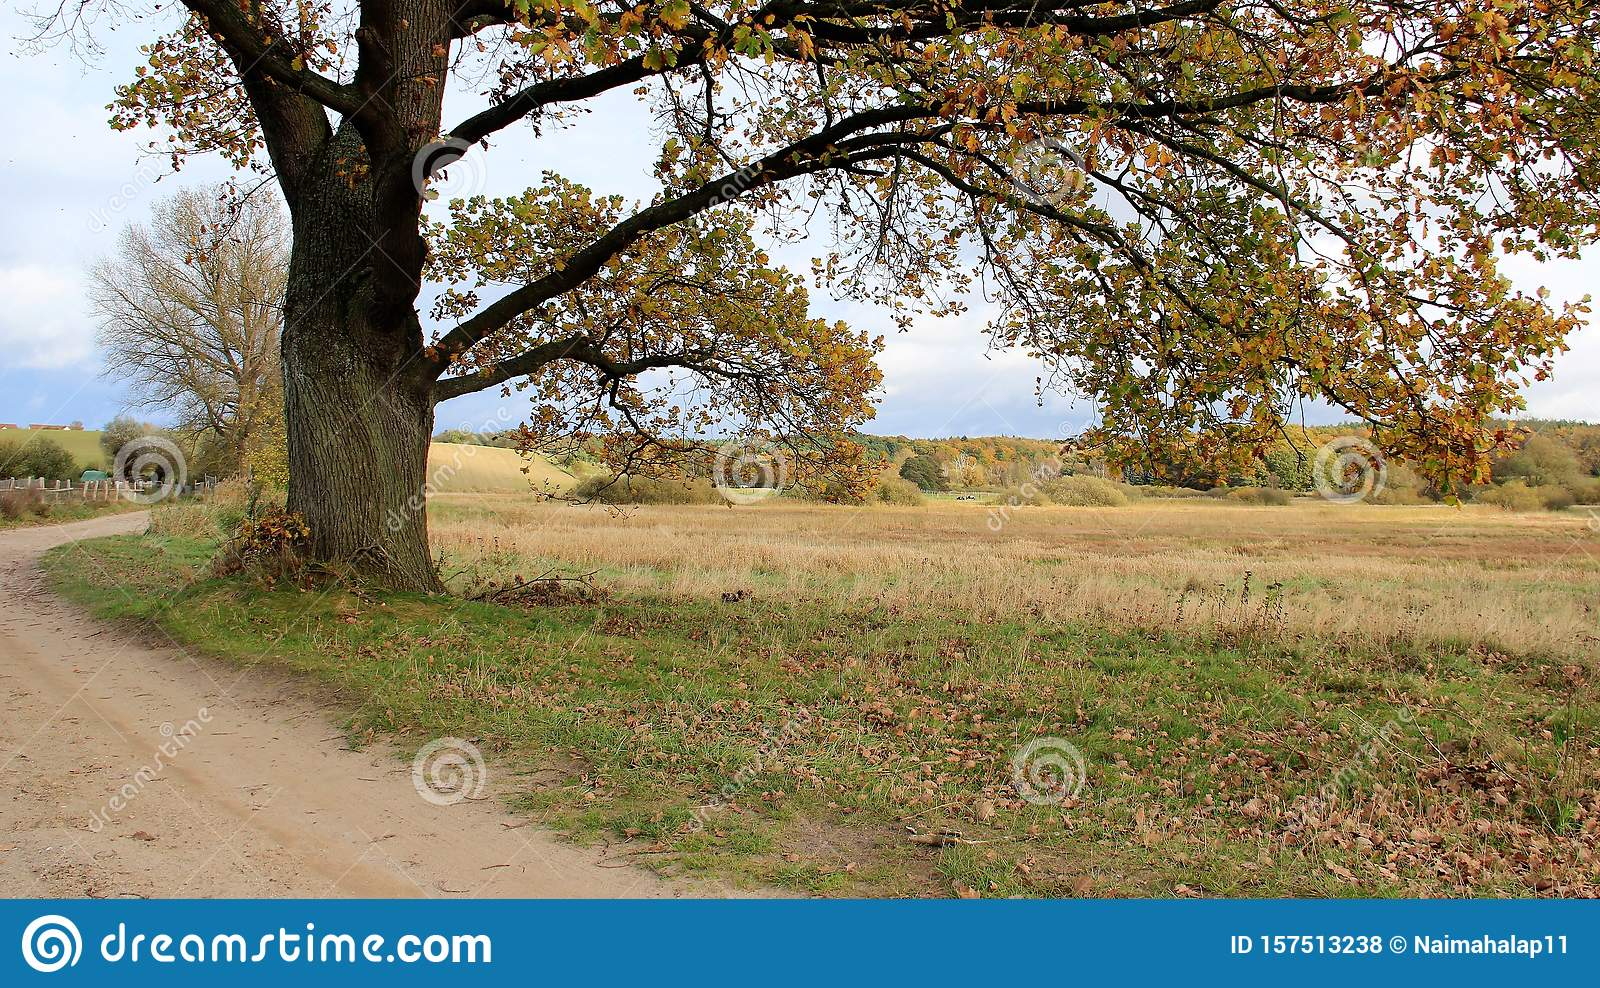 7 606 Quiet Pasture Photos Free Royalty Free Stock Photos From Dreamstime